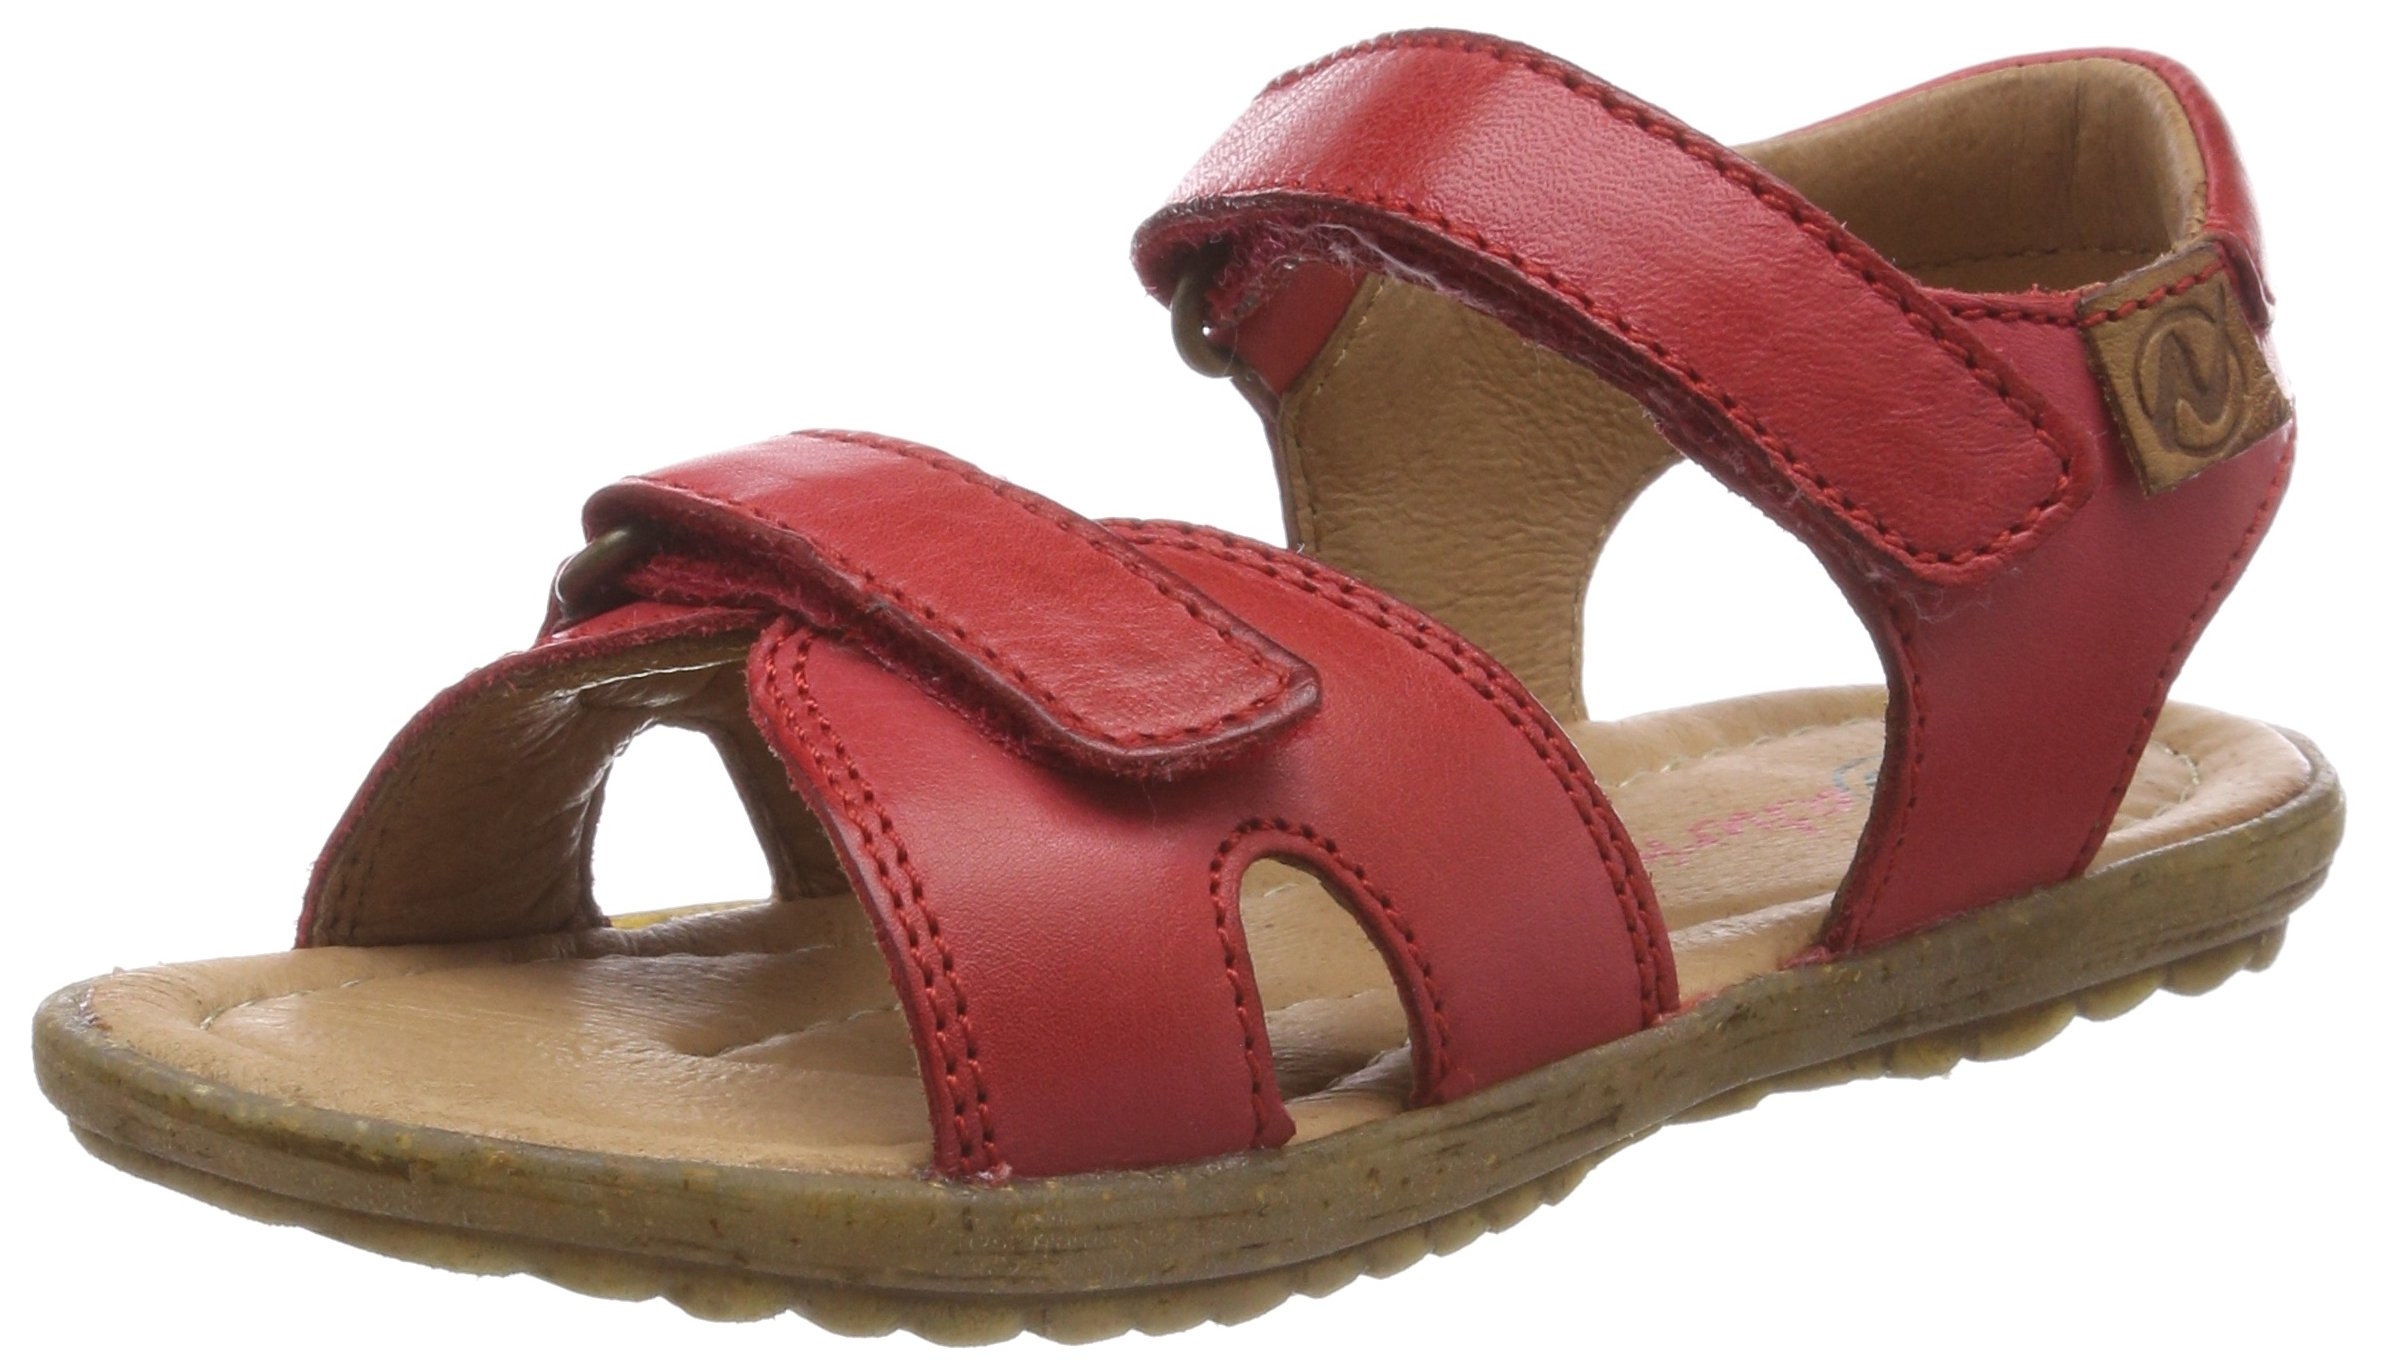 Naturino Boys' Sun Ankle Strap Sandals, Red (Rosso 9106), 13UK Child